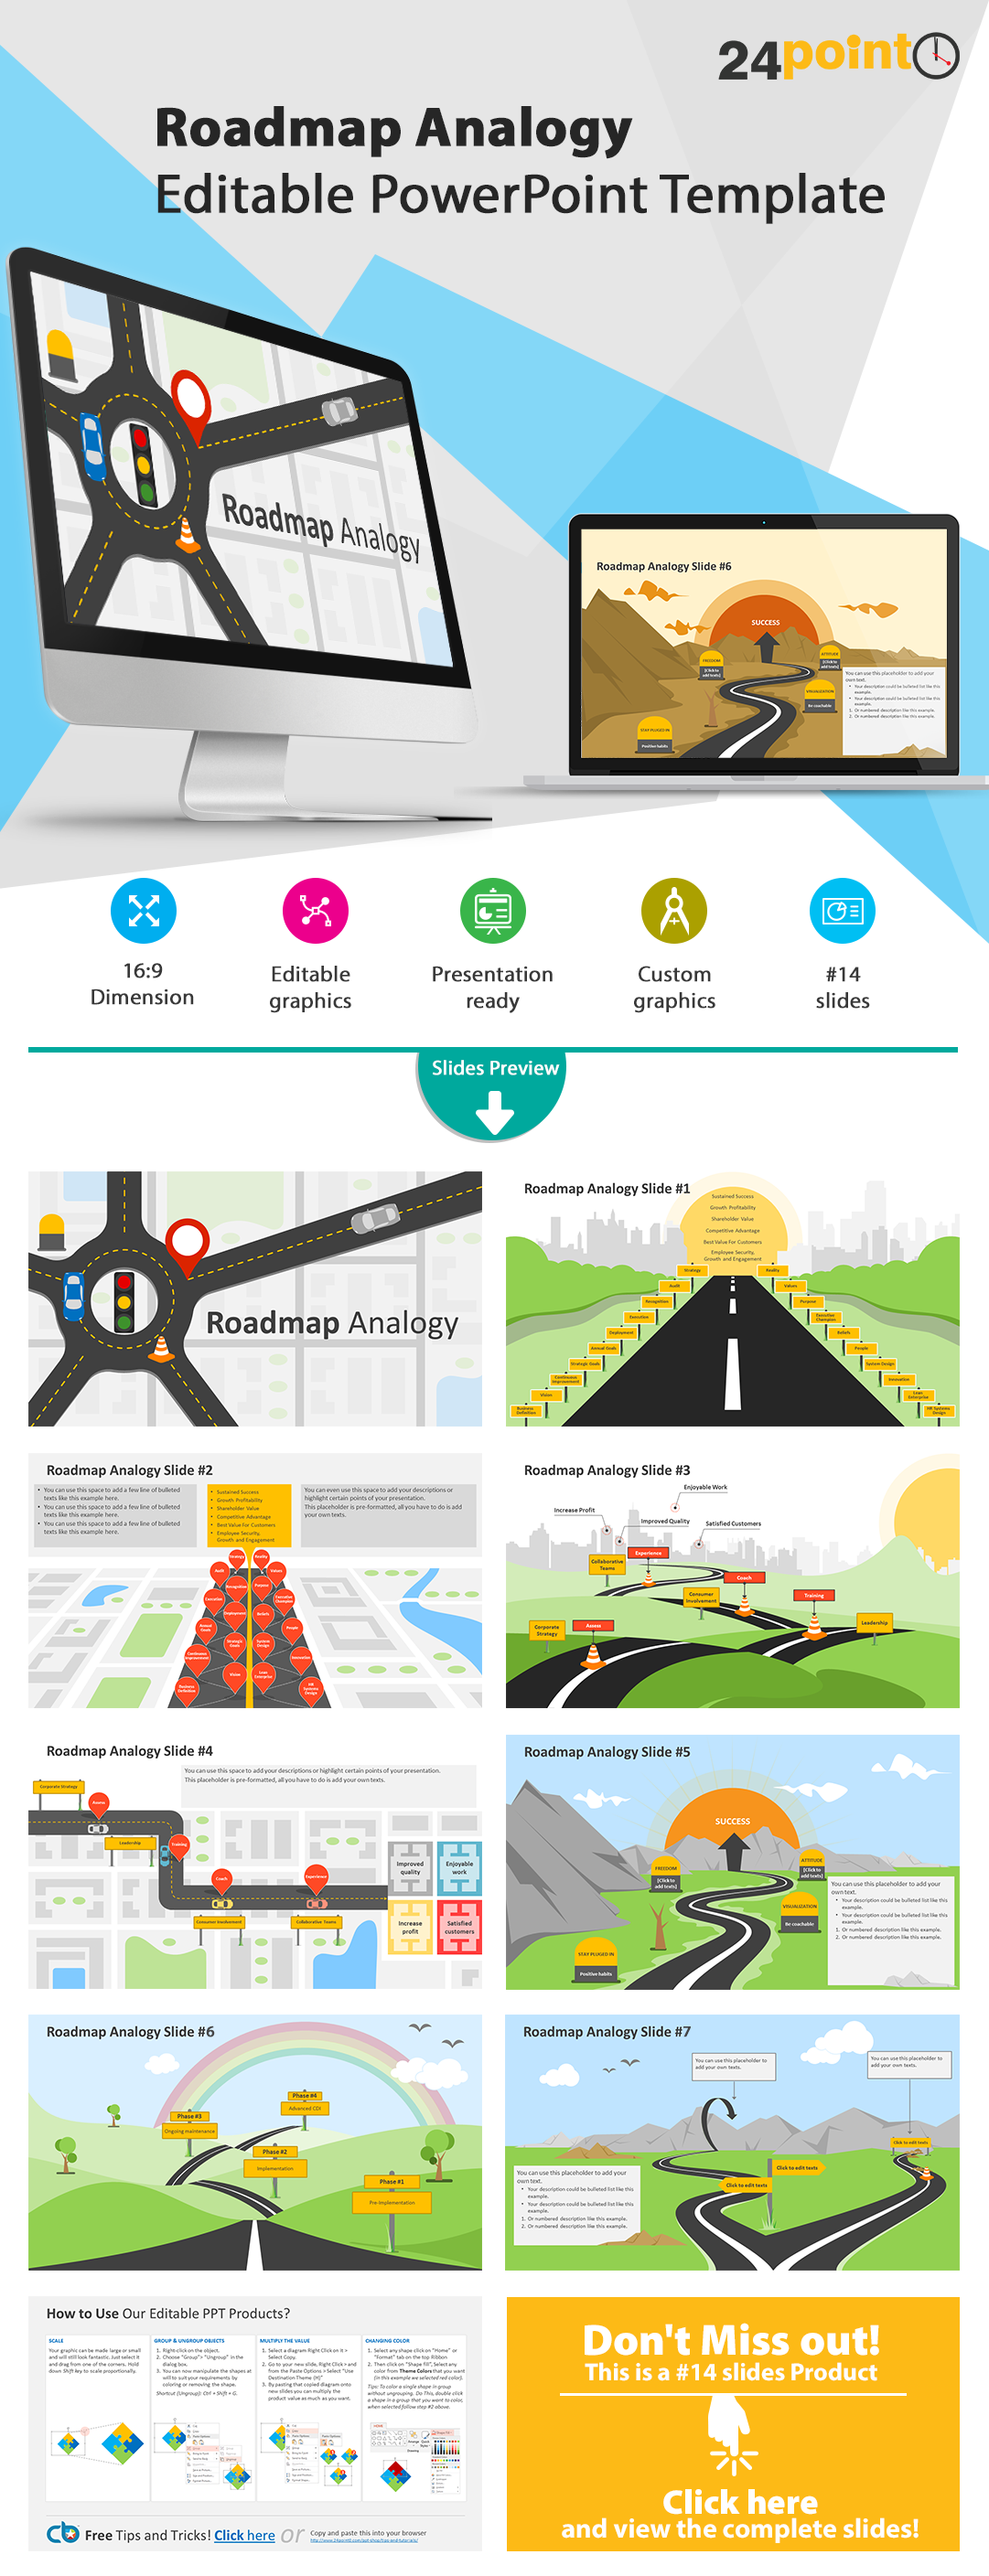 editable powerpoint templates: roadmap analogy slides | so what's, Modern powerpoint